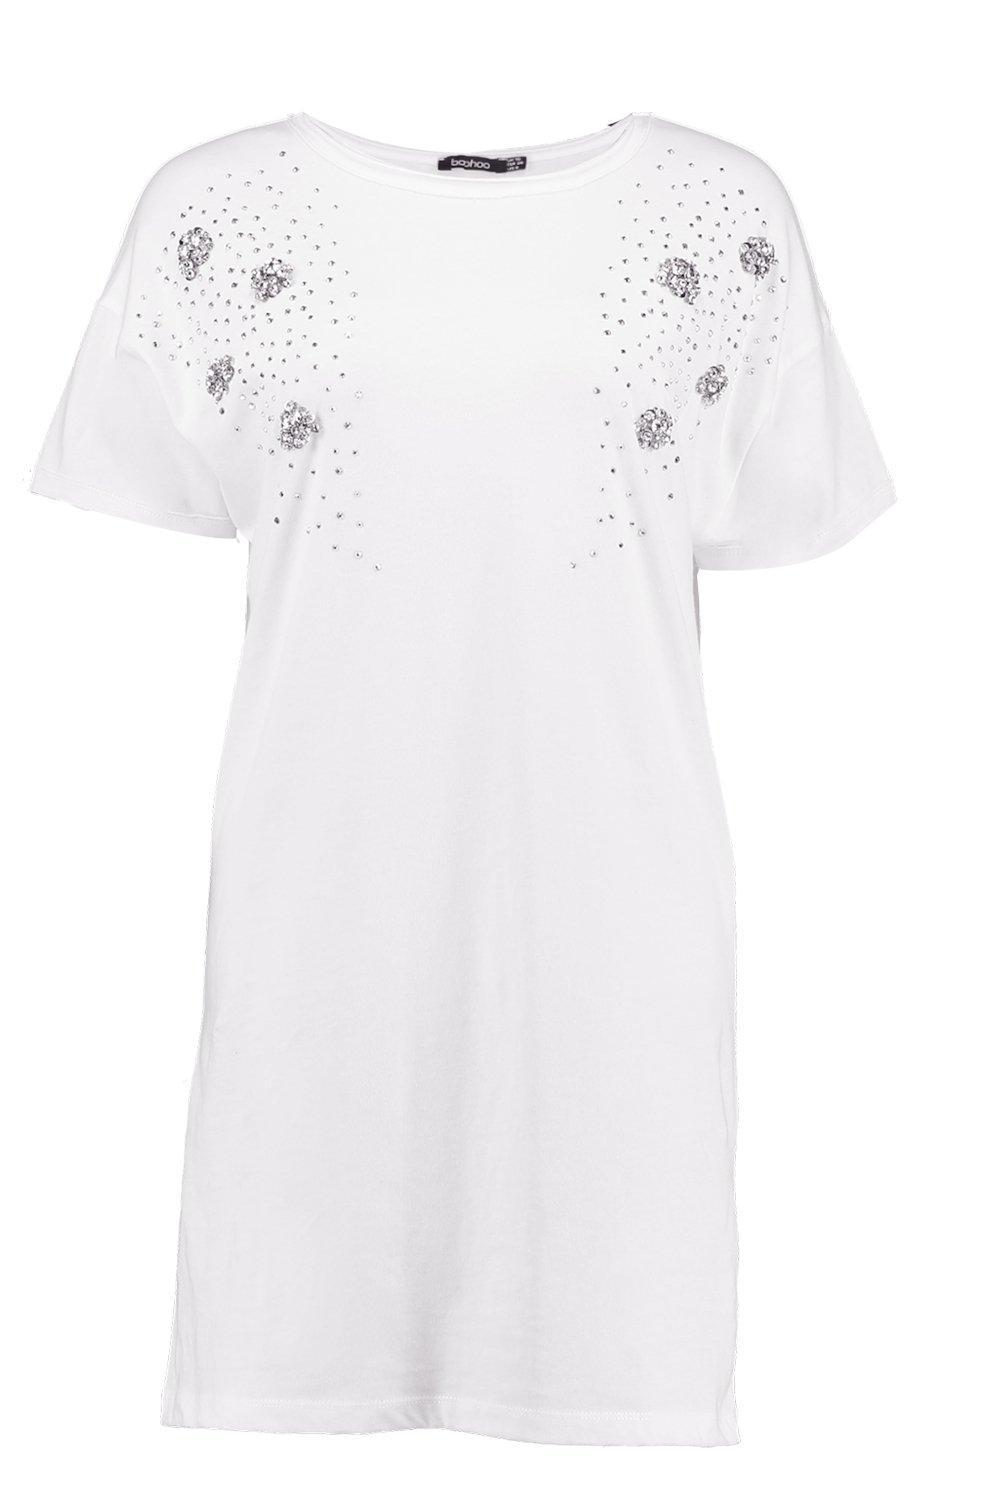 038934c08940 Gallery. Previously sold at: Boohoo · Women's T Shirt Dresses ...